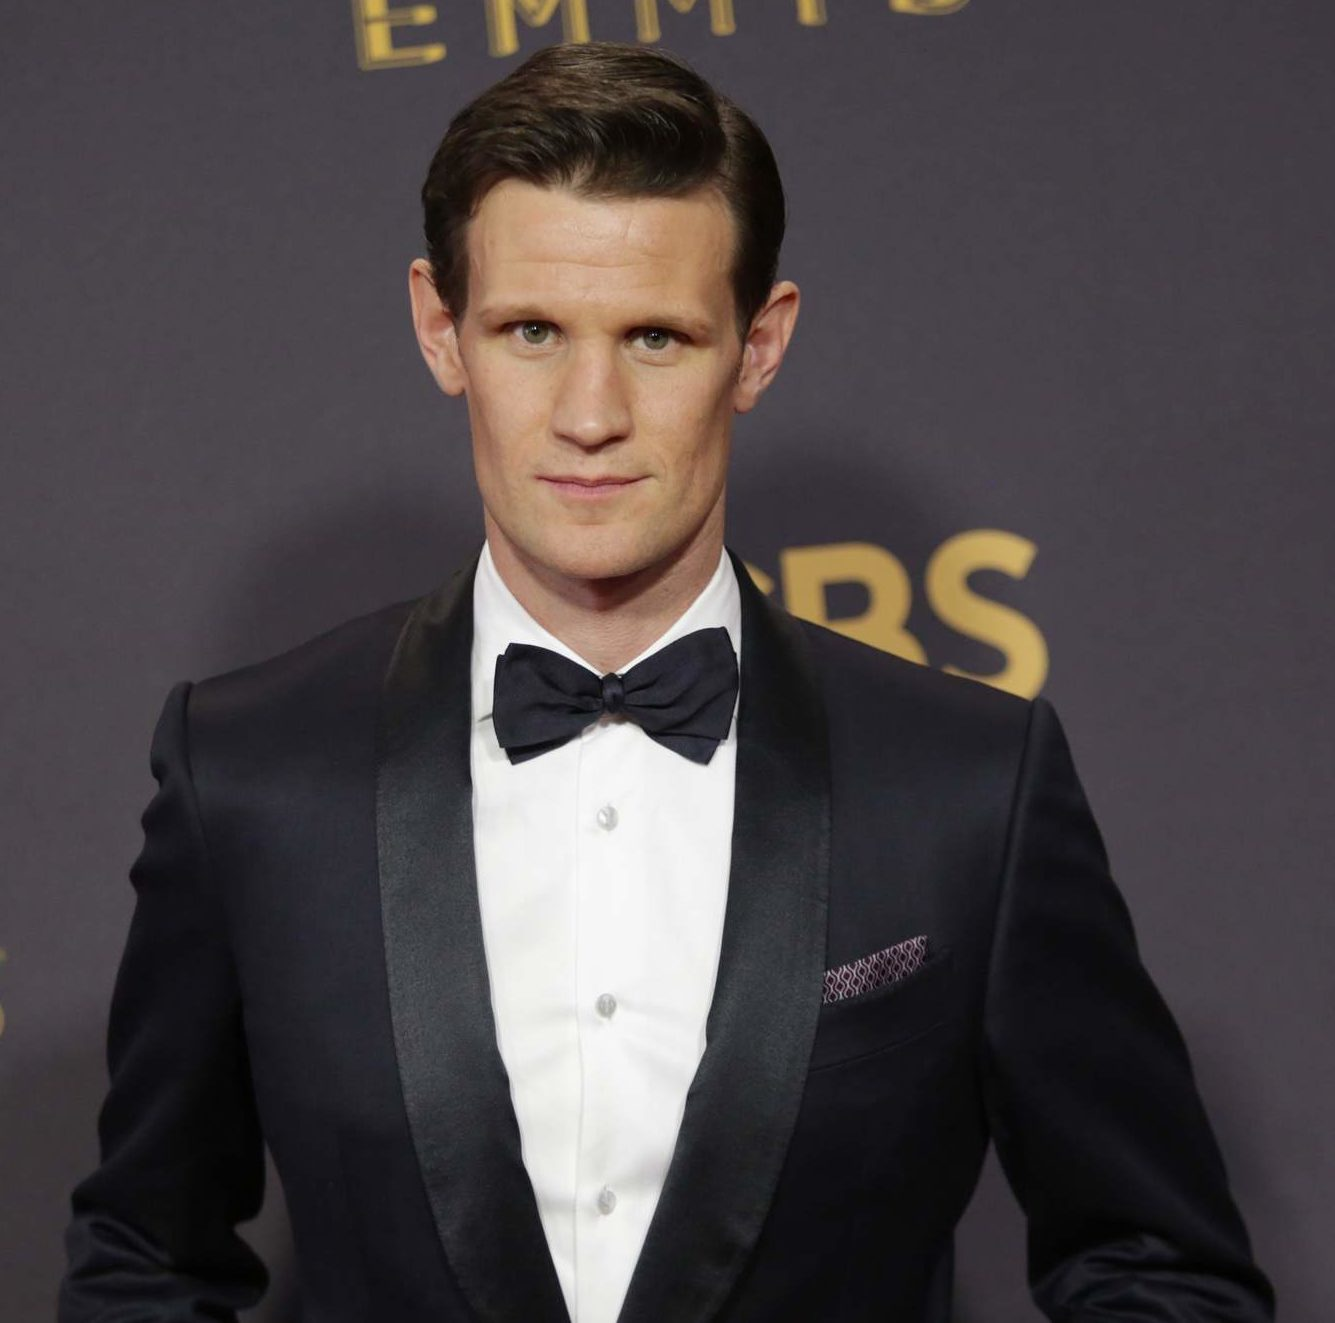 Matt Smith Emmy Awards 2017 brown hair smart comb over